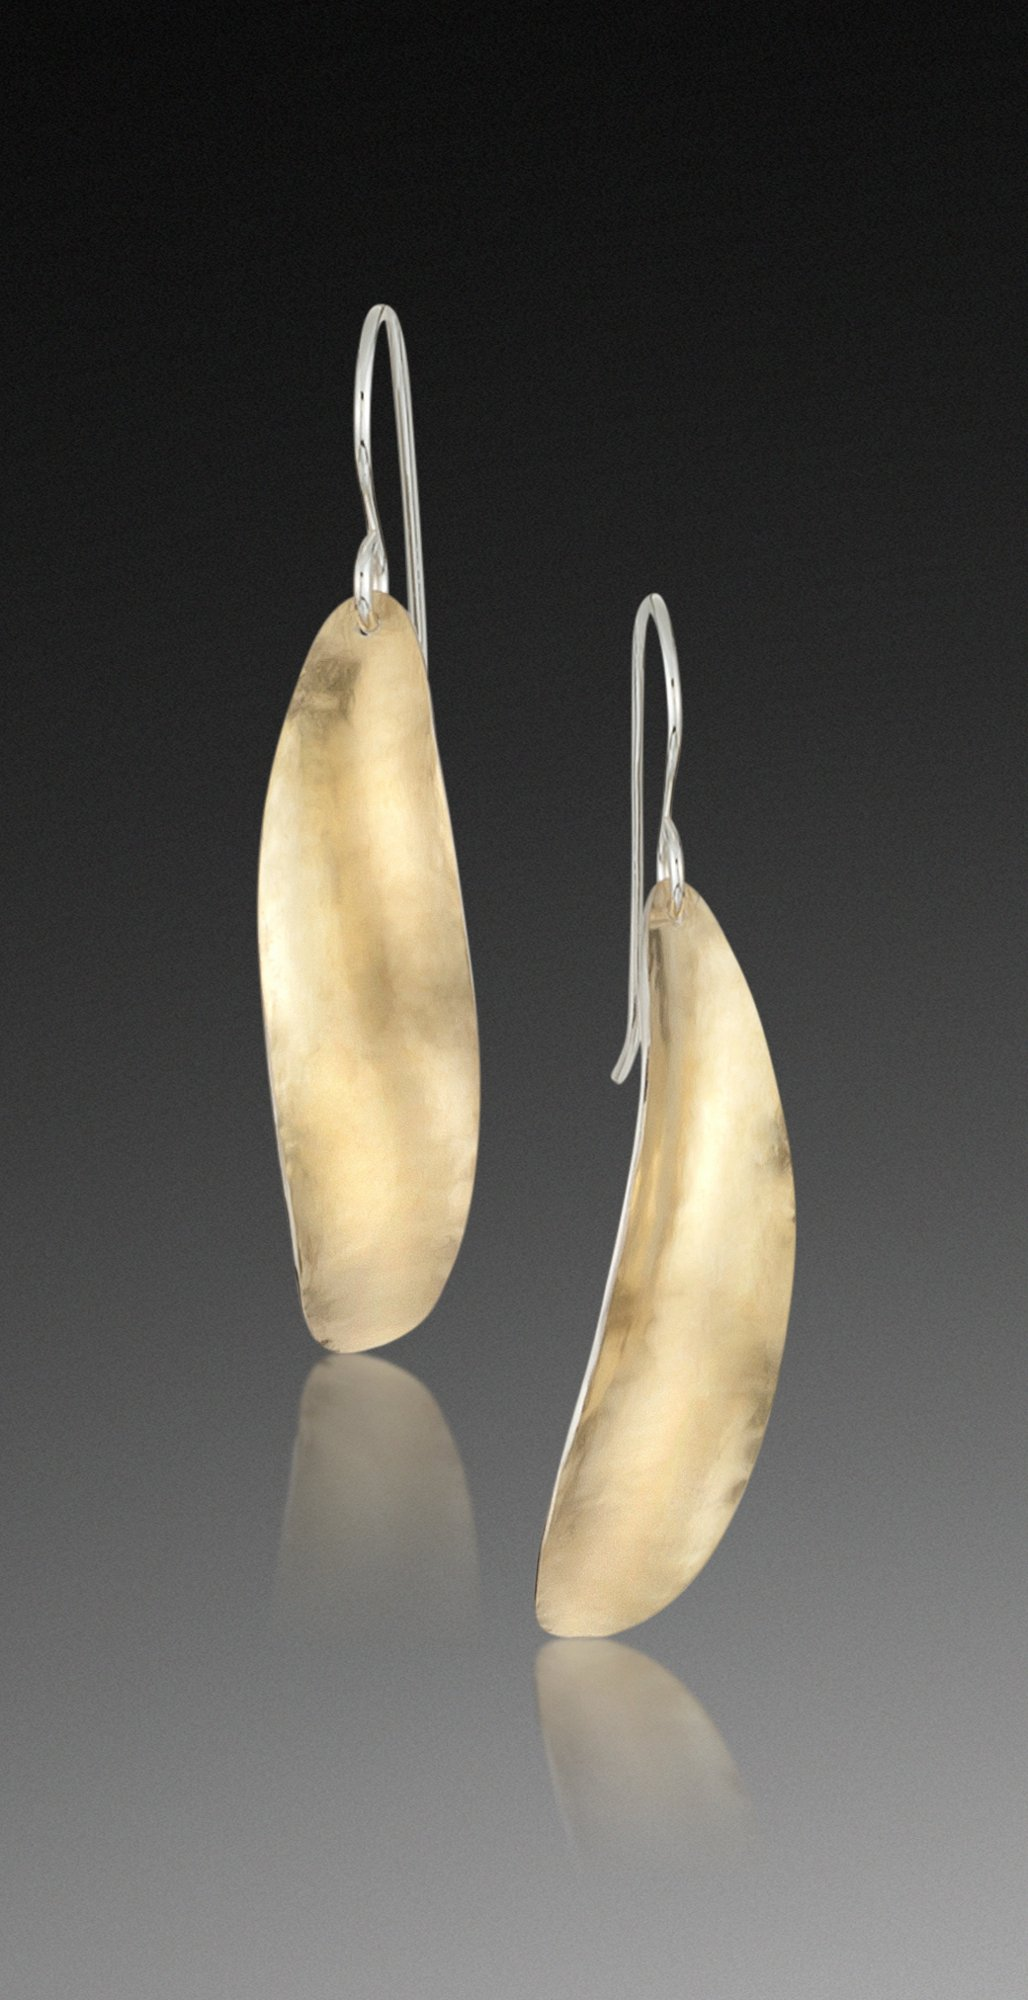 Oval Earrings in Bimetal